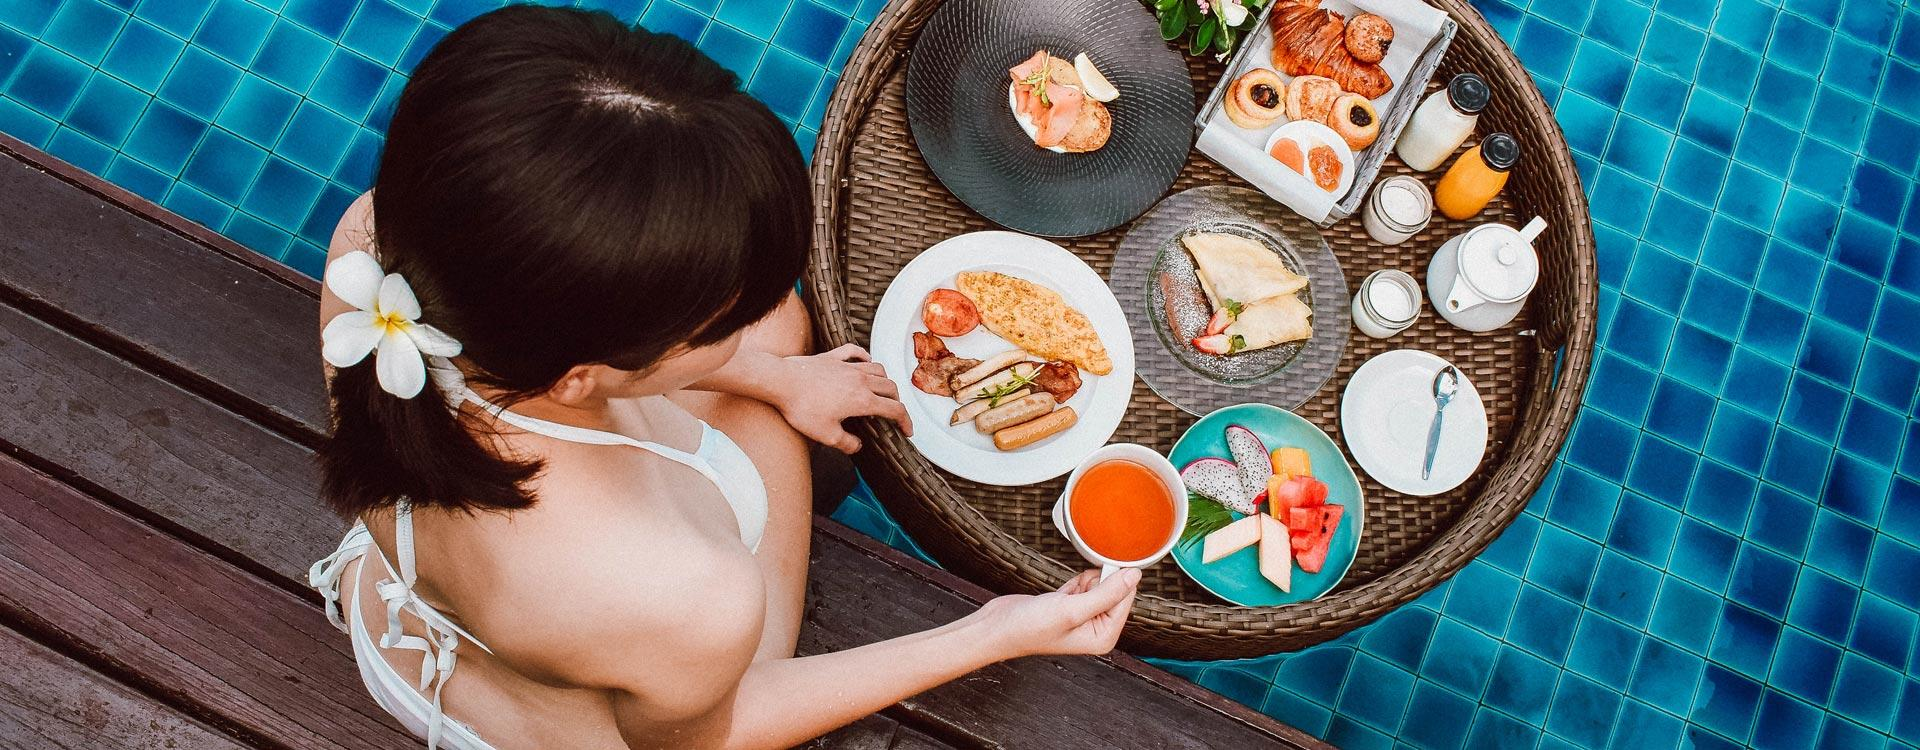 ALS_Local_Experience_Floating_Breakfast_1920x750